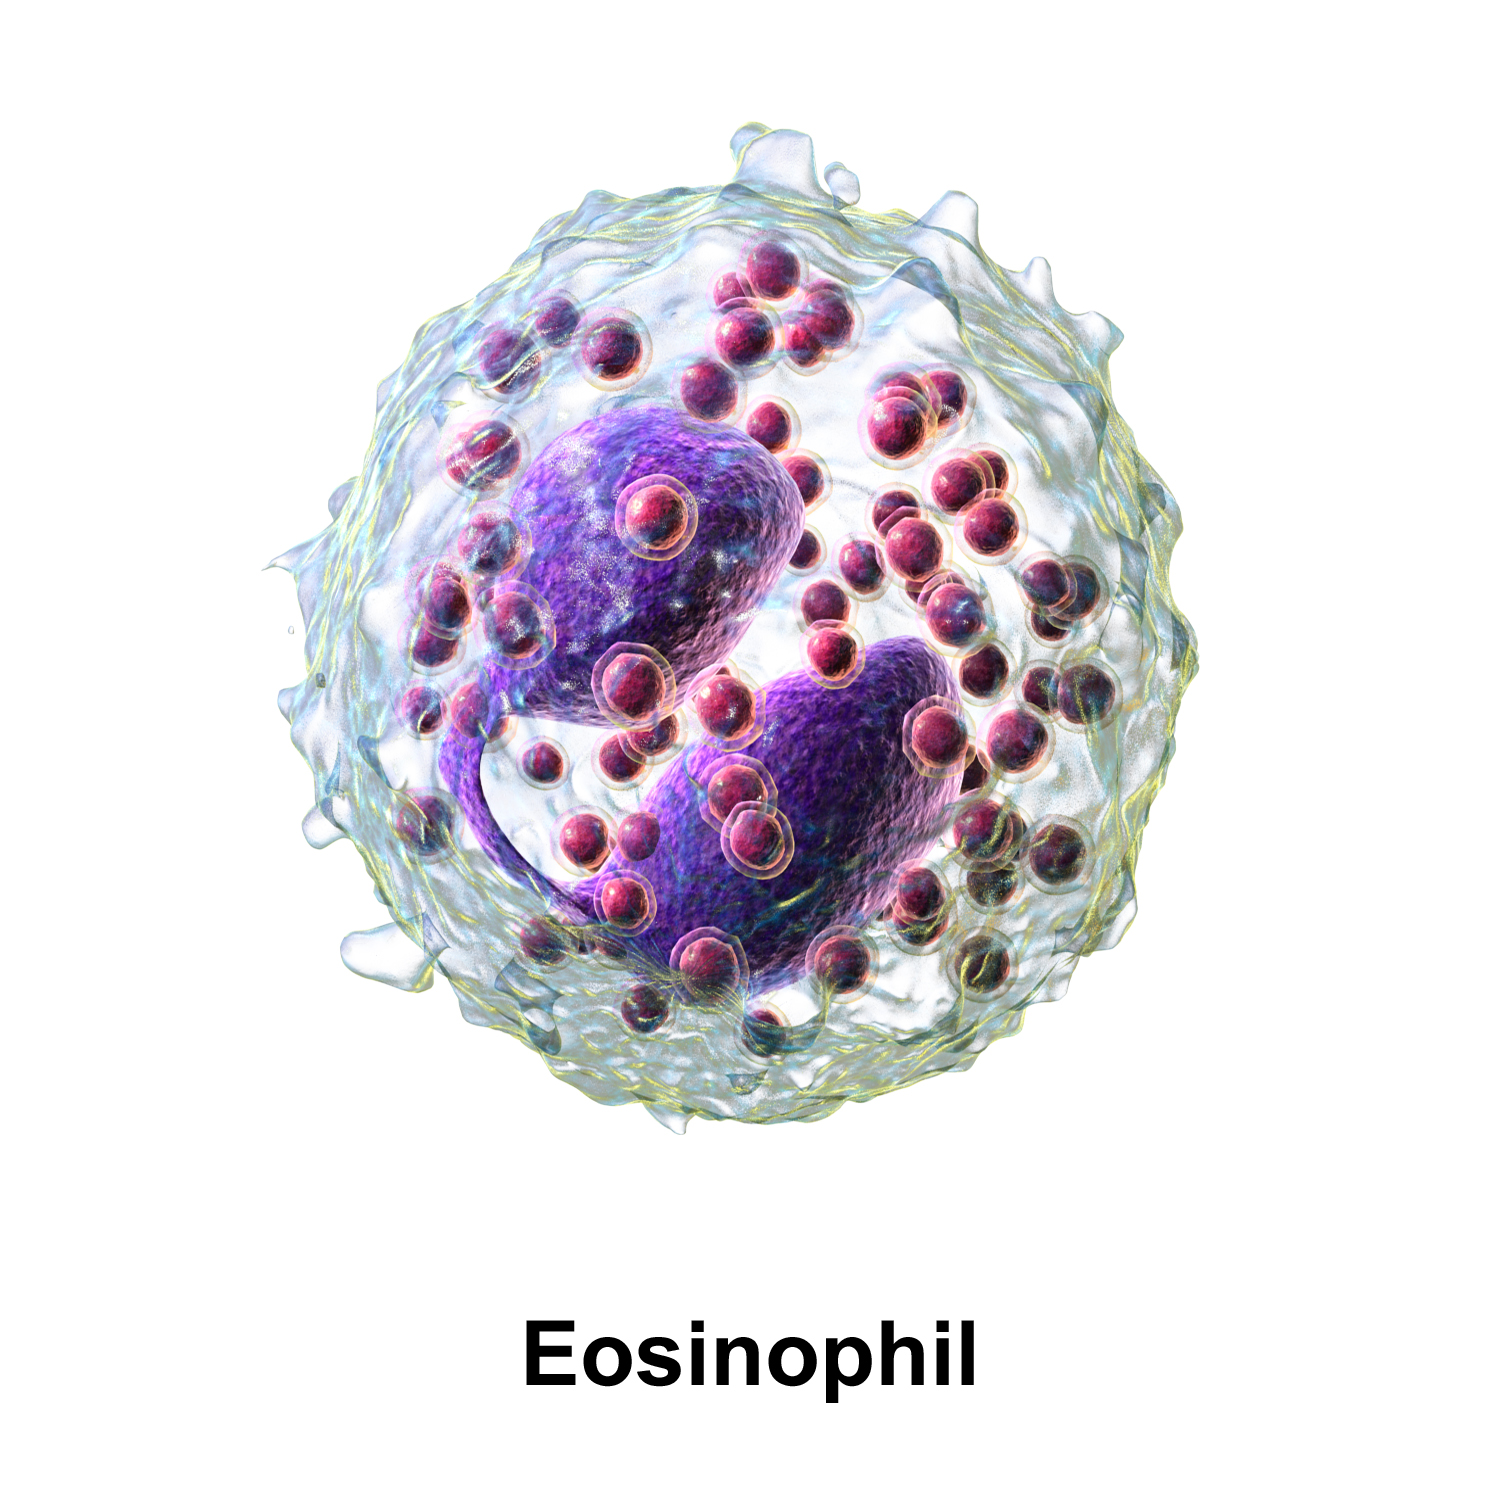 Eosinophil Cell Structure eosinophil - wikipedia, the free ...